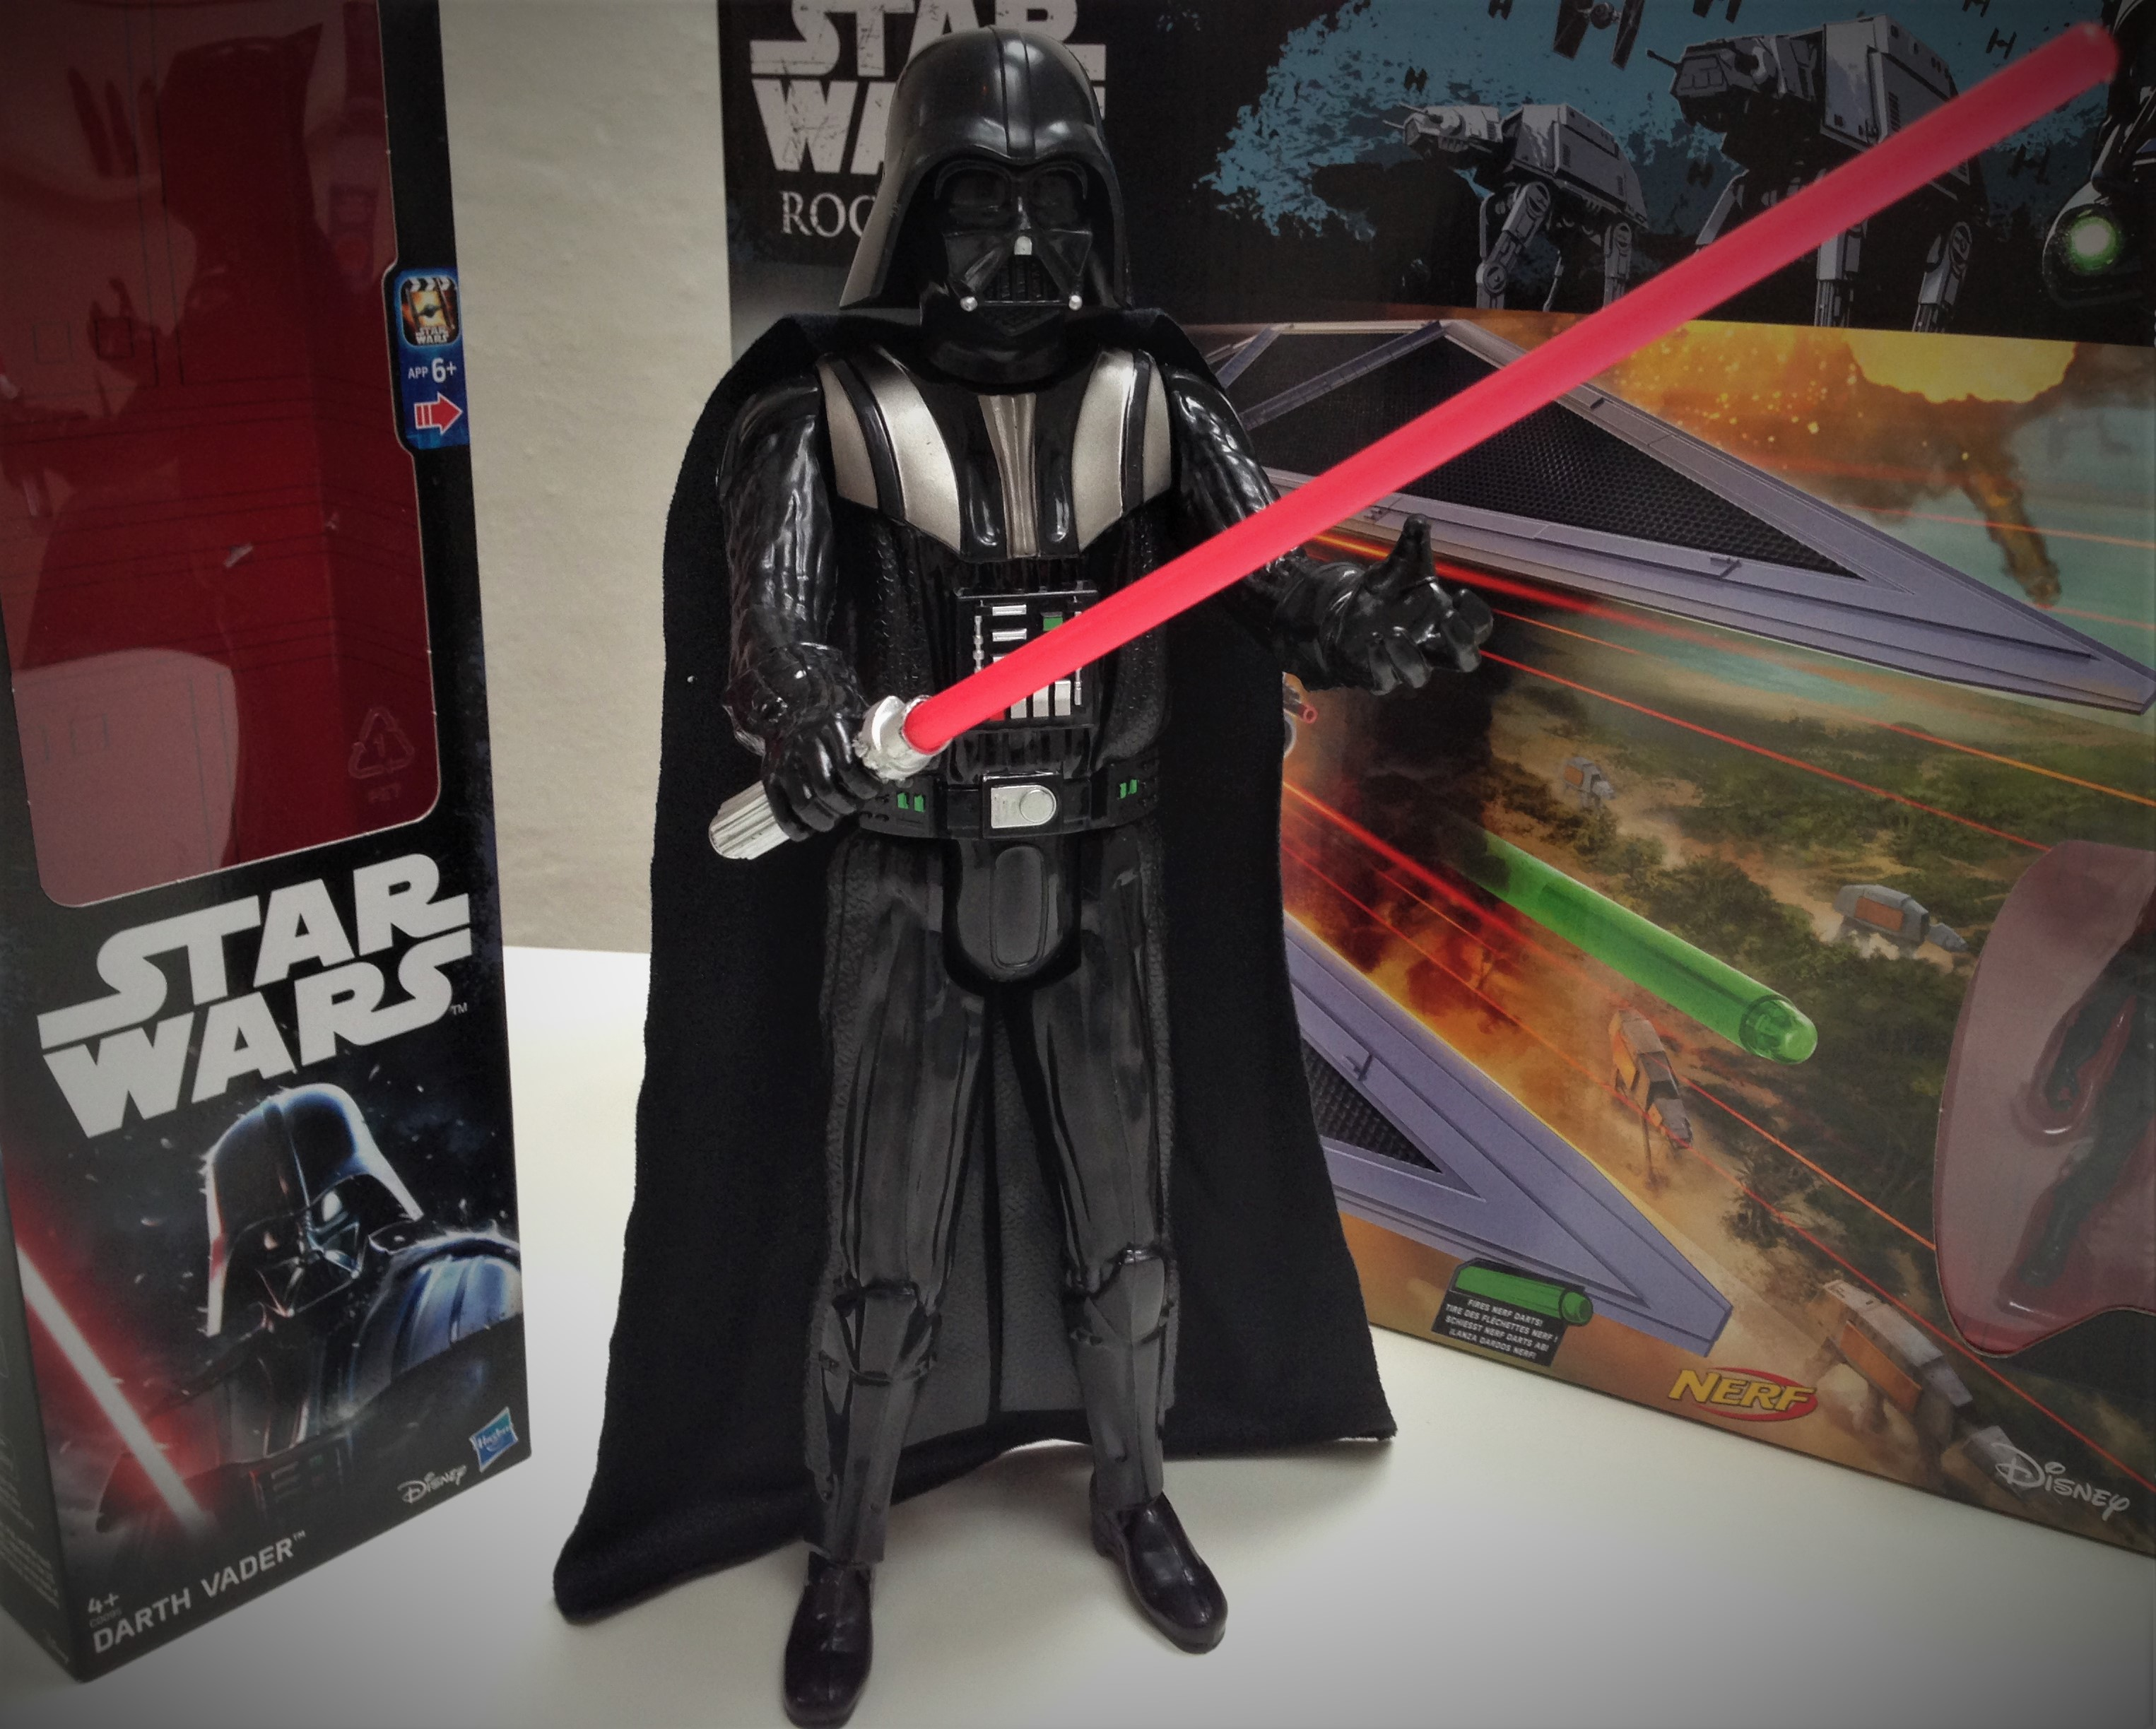 hasbro-fiktion-kultur-star-wars-rogue-one-a-star-wars-story-tie-striker-darth-vader-4